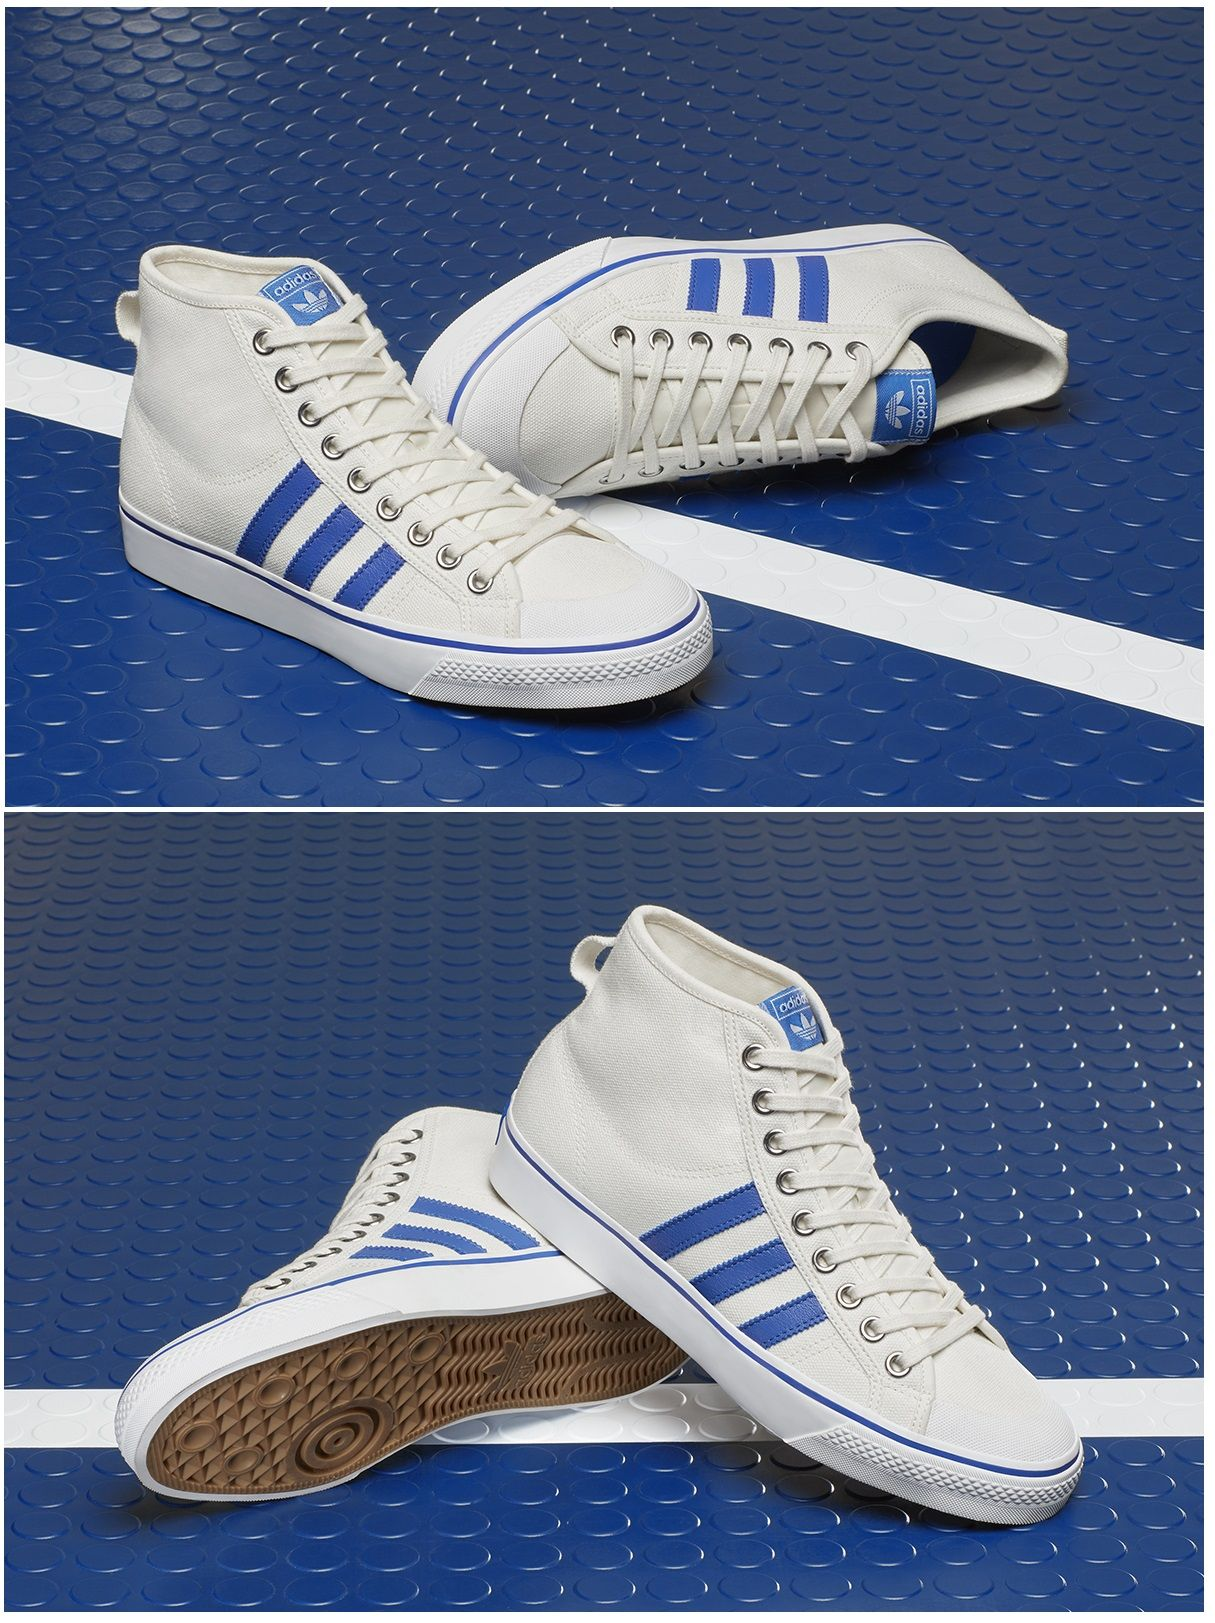 reputable site d7a36 997f0 adidas Originals Nizza. Find this Pin and more on Men s shoes ...